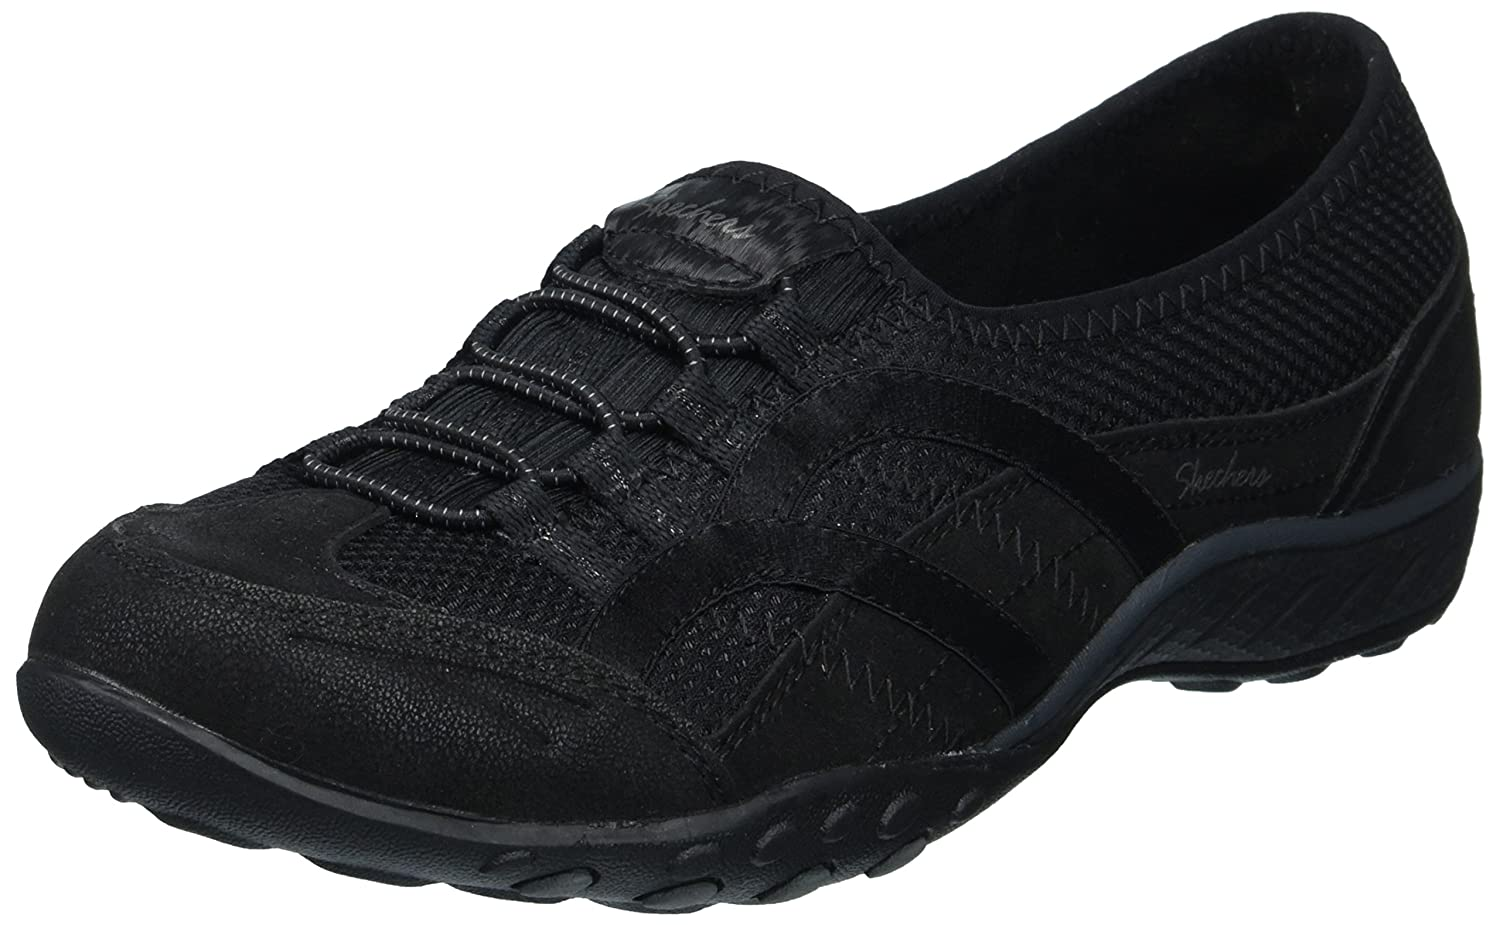 Skechers Women's Breathe Easy Well Versed Sneaker B07486C9XL 7 B(M) US|Black